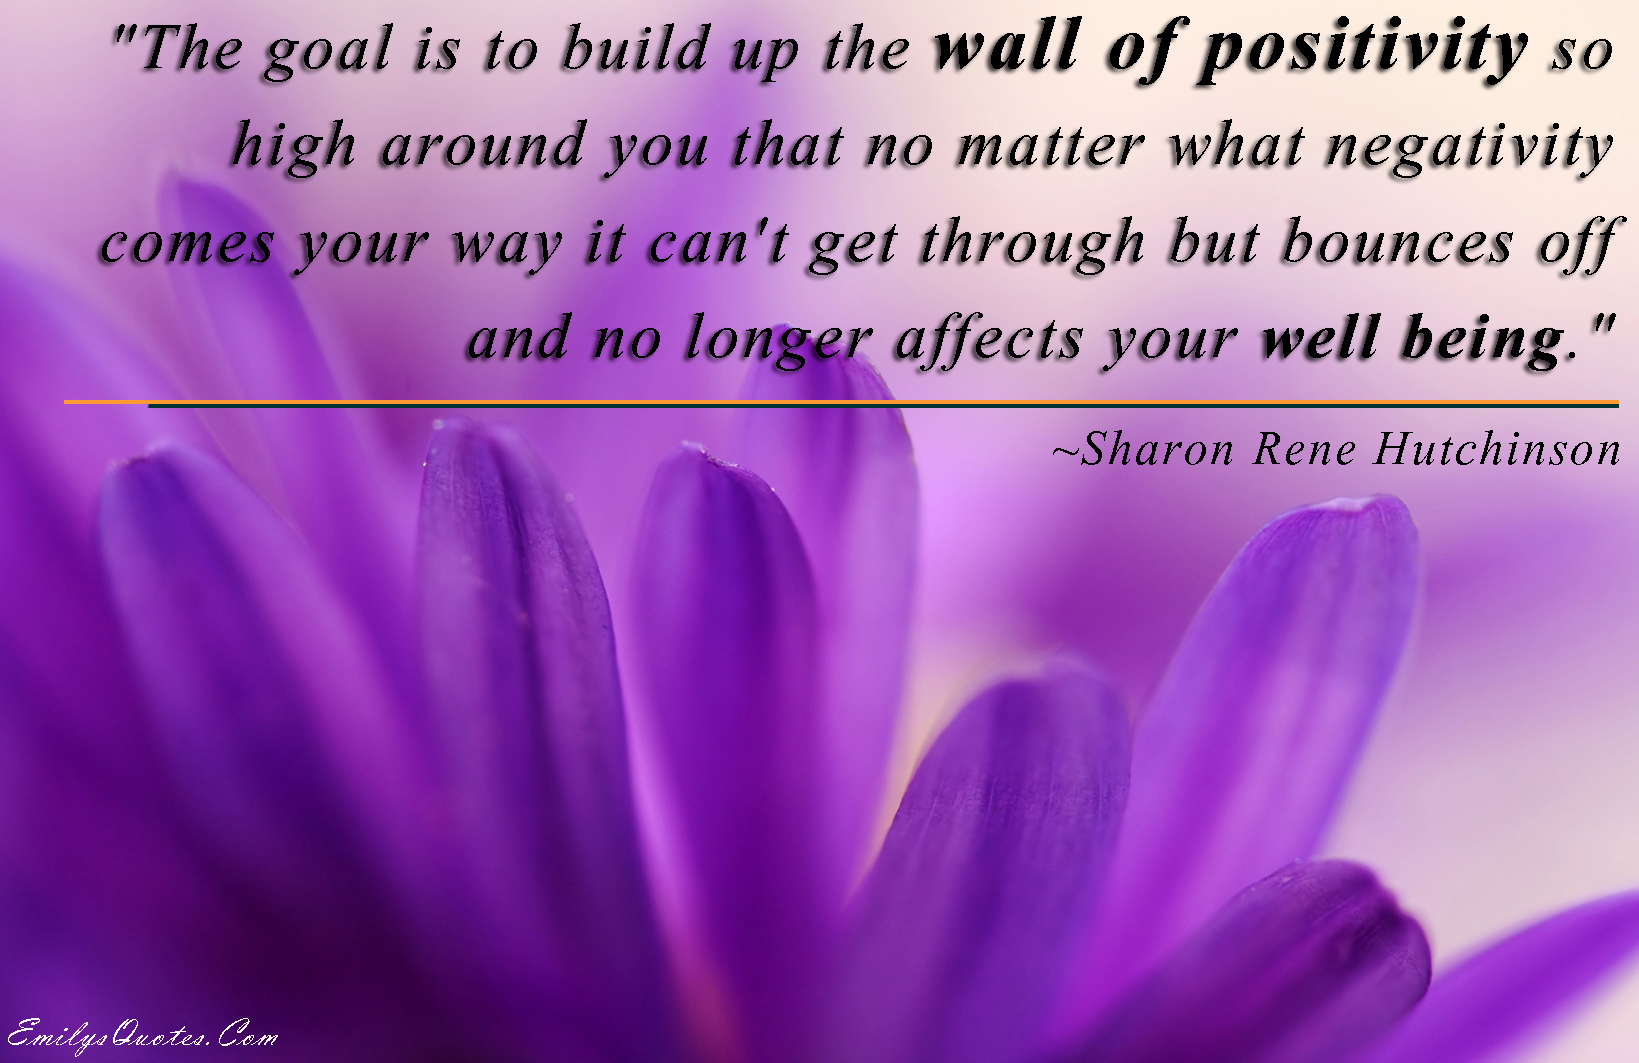 EmilysQuotes.Com - amazing, great, Sharon Rene Hutchinson, goal, positive, inspirational, negative